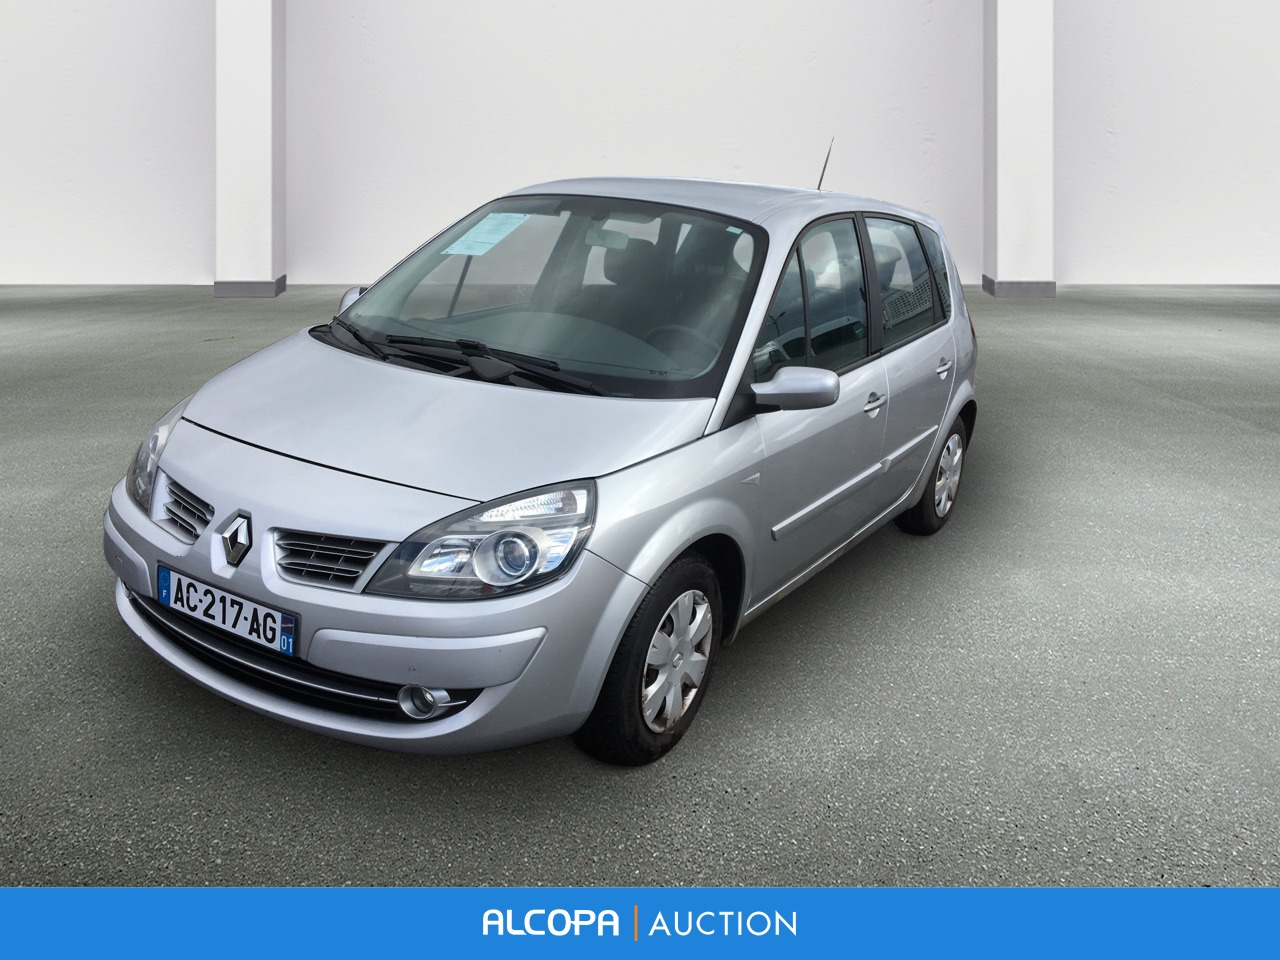 renault scenic ii scenic 1 5 dci 105 eco2 emotion lyon alcopa auction. Black Bedroom Furniture Sets. Home Design Ideas